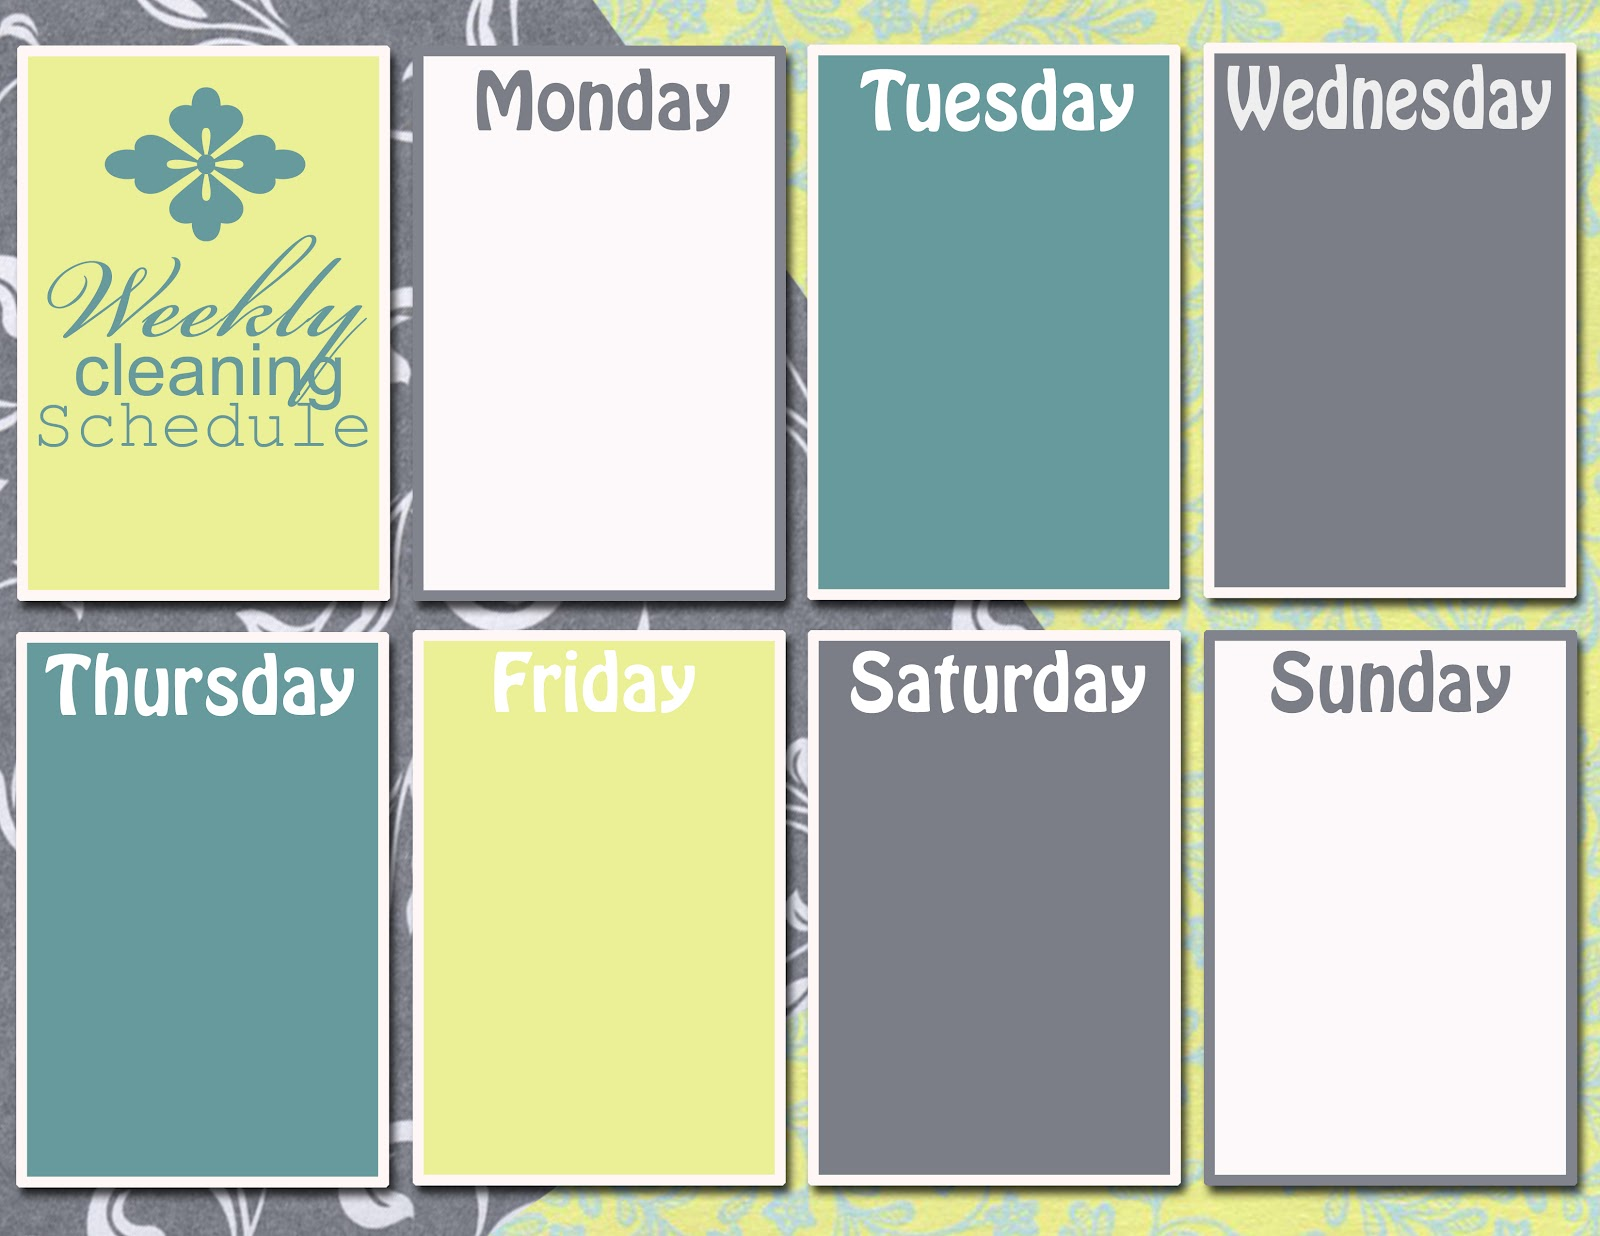 saturday to friday calendar template - graphic monday weekly cleaning schedule discover